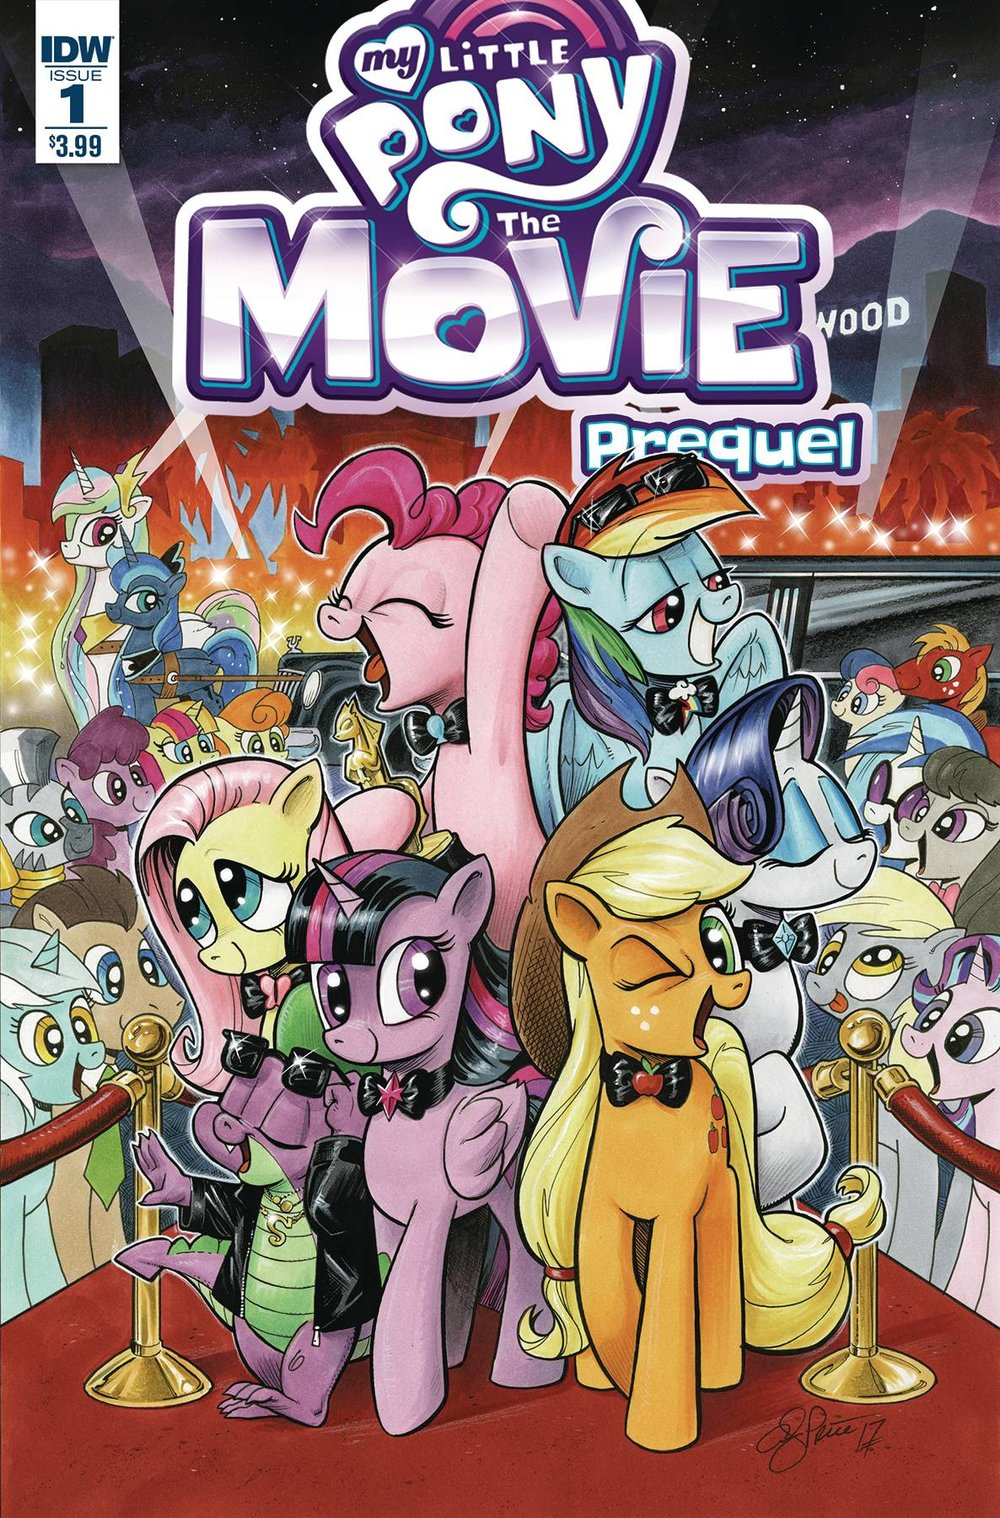 MY LITTLE PONY MOVIE PREQUEL 1.jpg